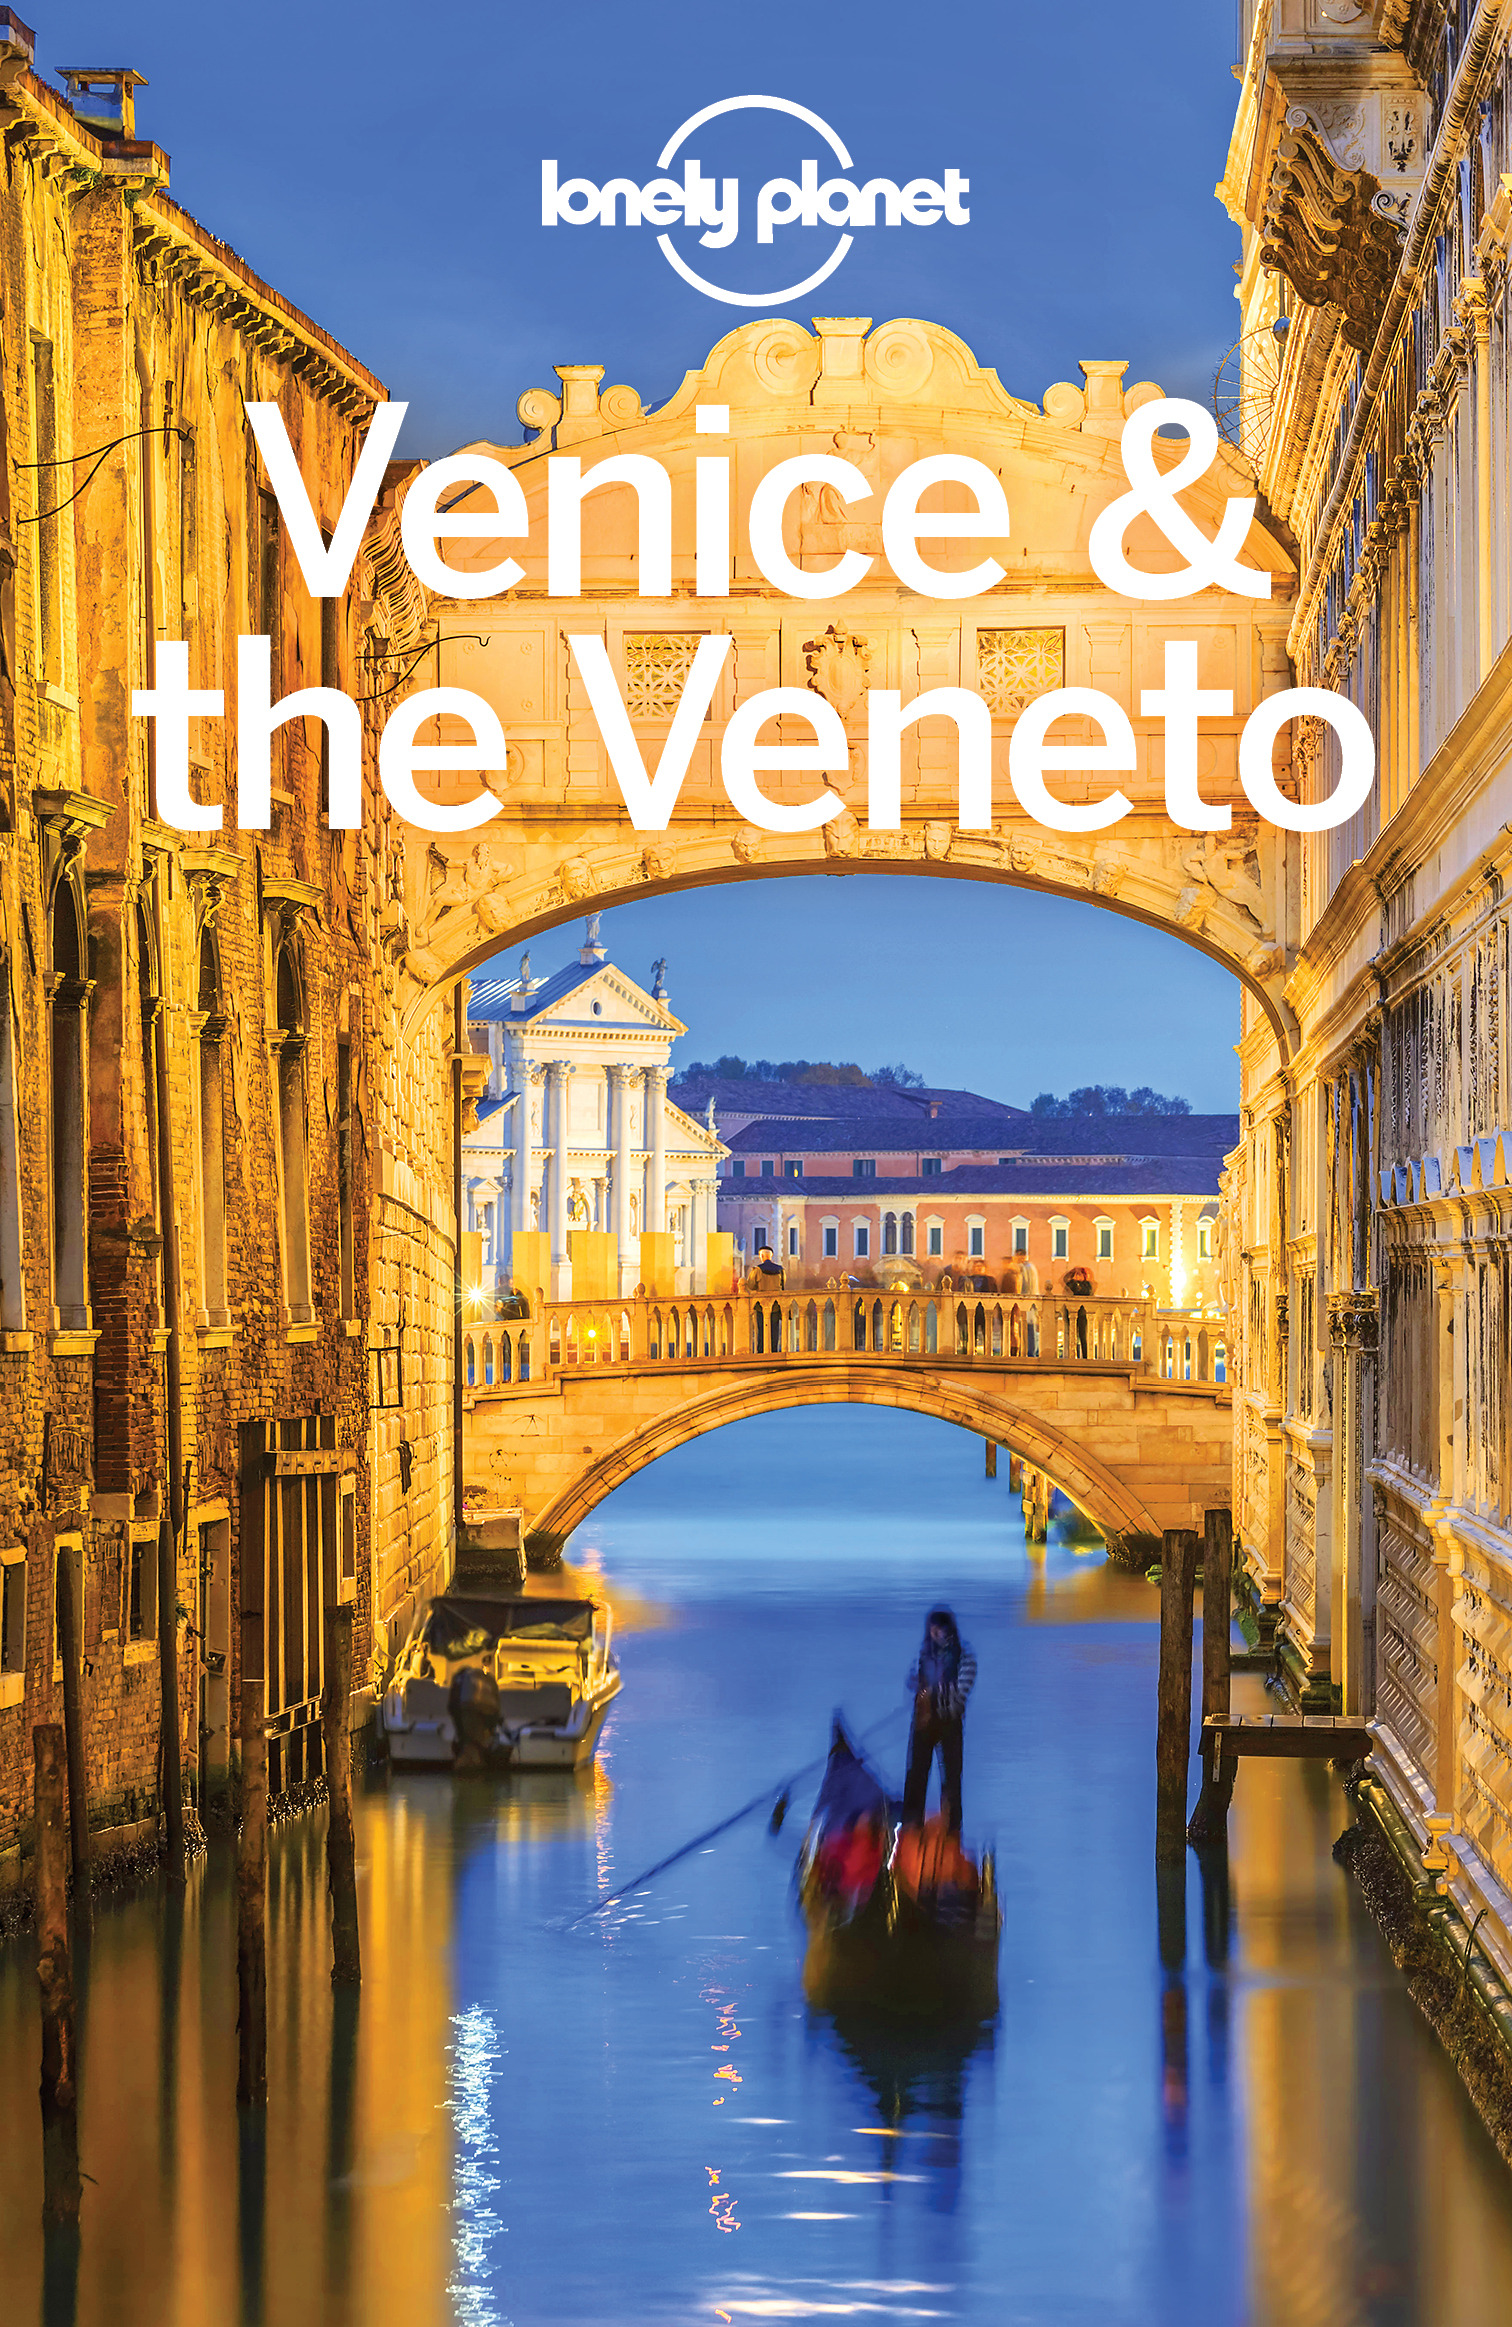 Dragicevich, Peter - Lonely Planet Venice & the Veneto, ebook